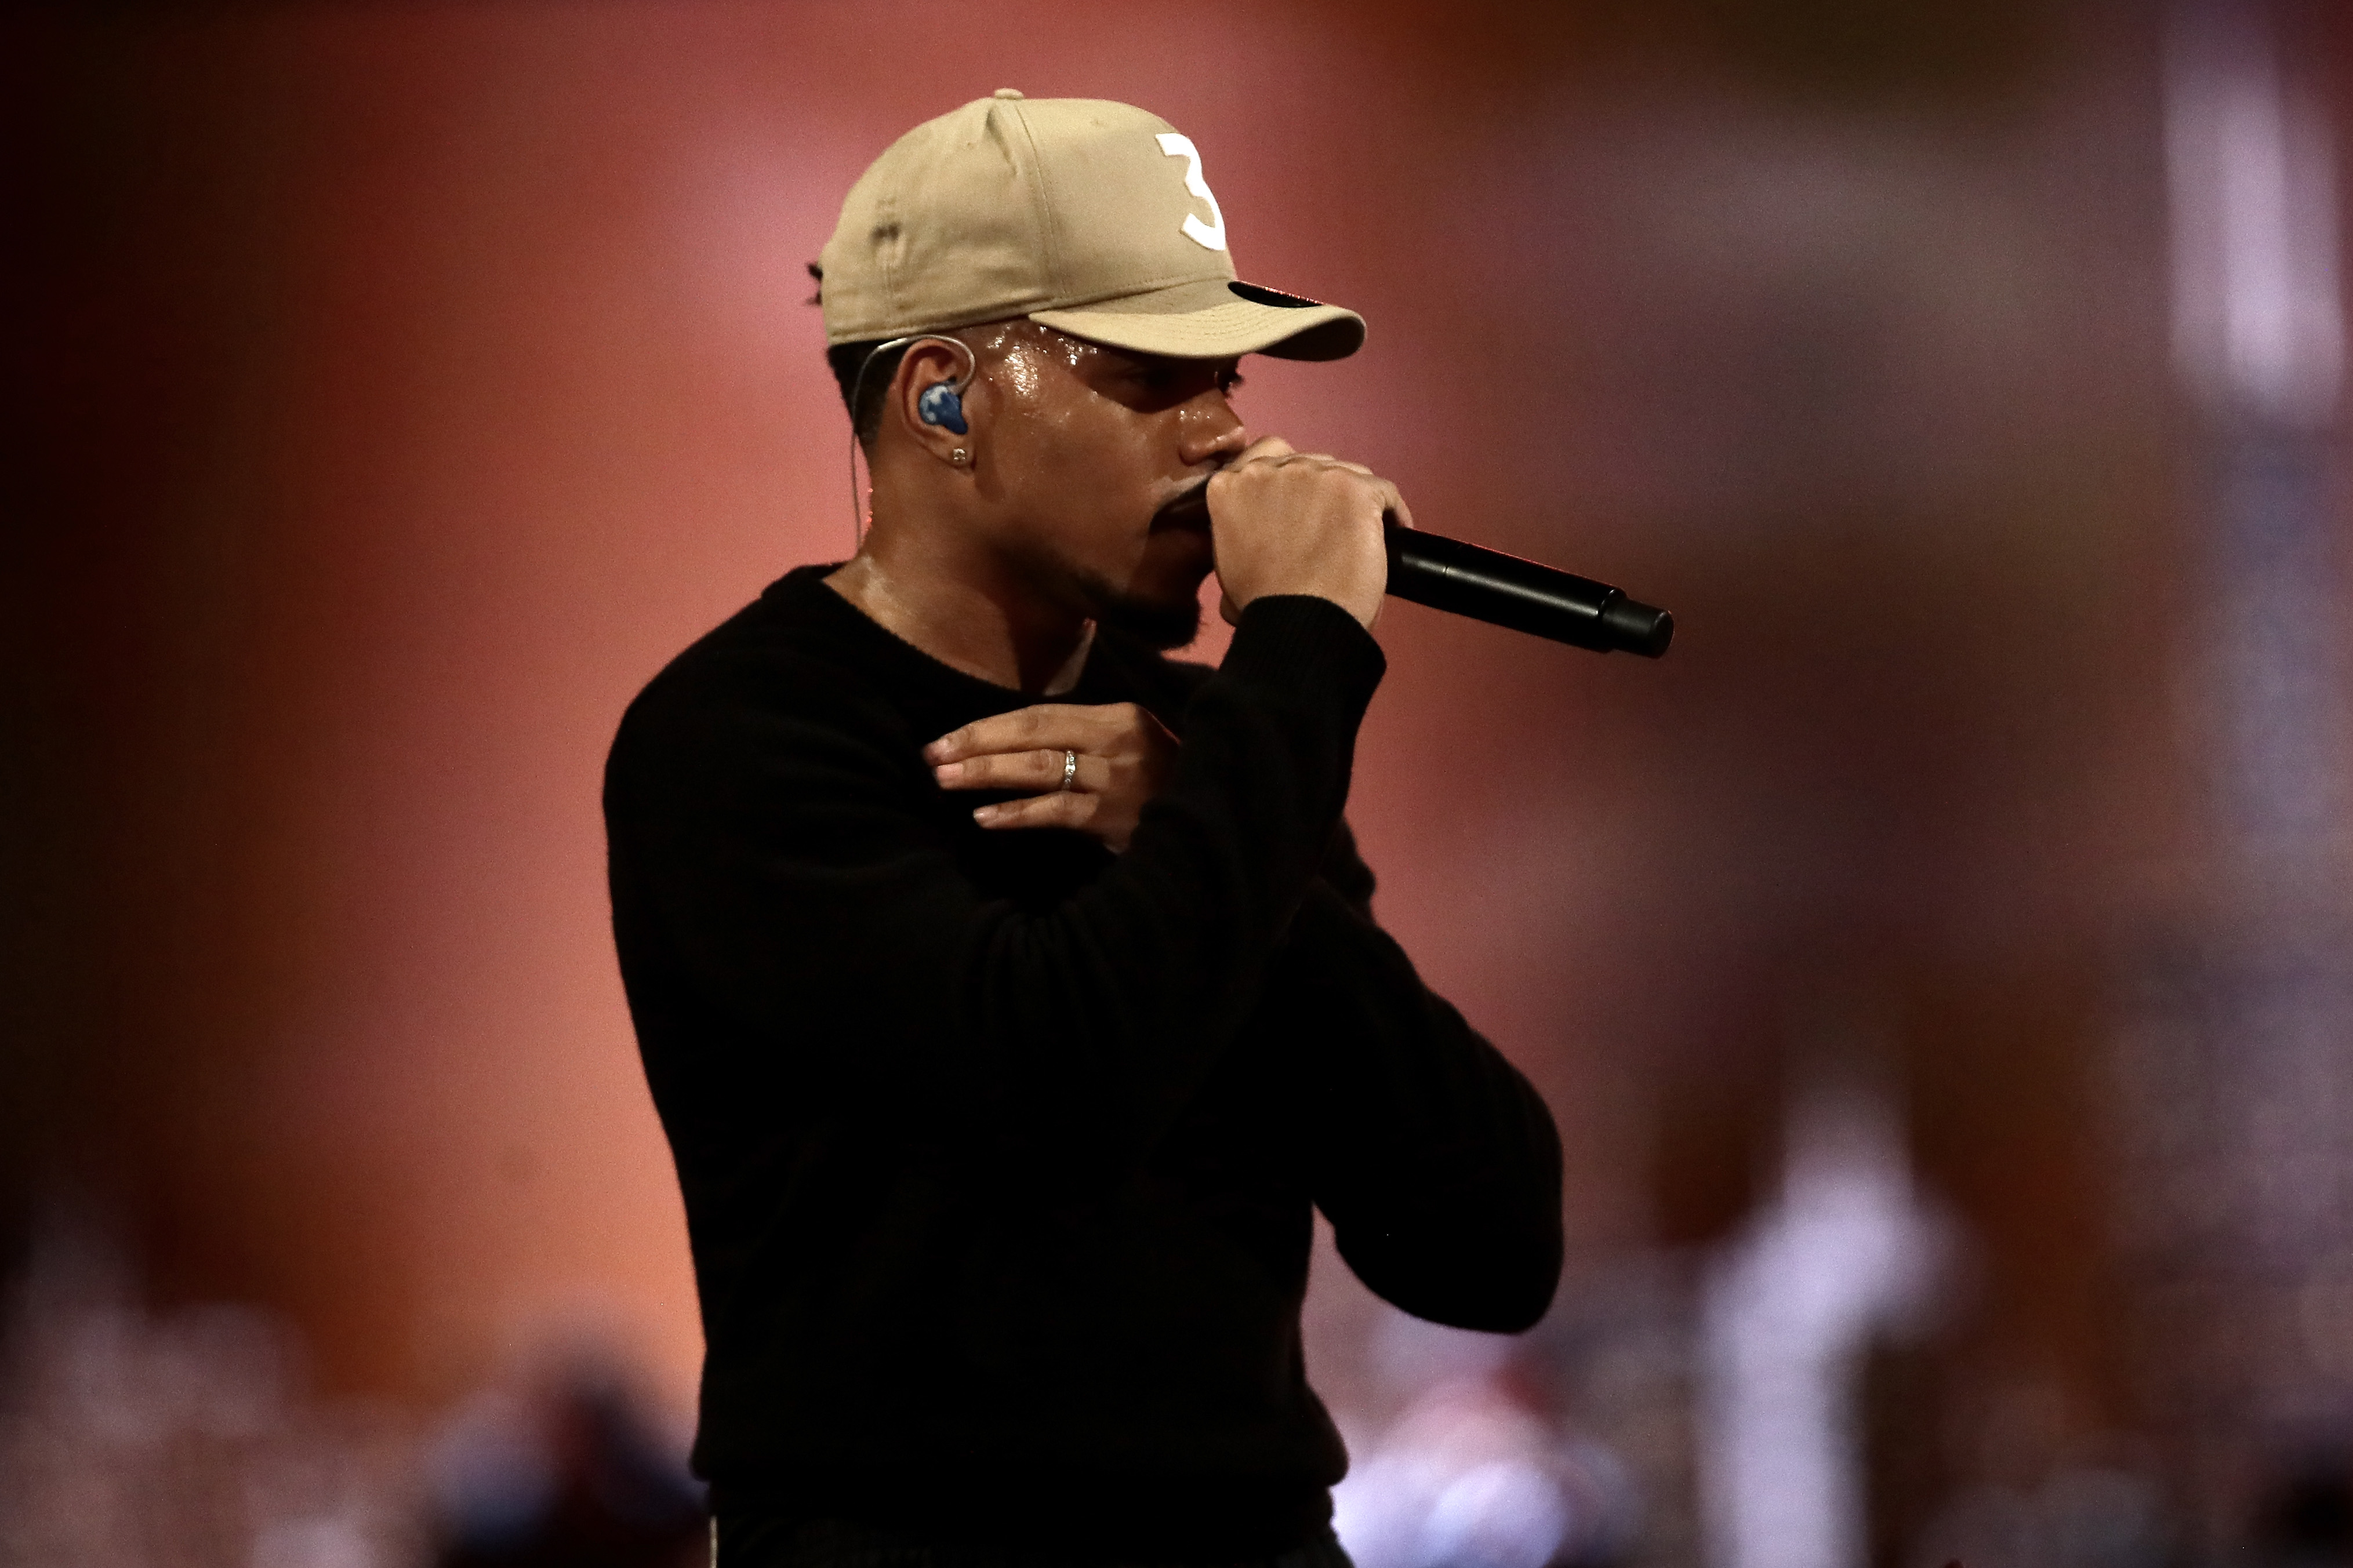 Chance the Rapper performs during halftime of the 69th NBA All-Star Game at the United Center on February 16, 2020.